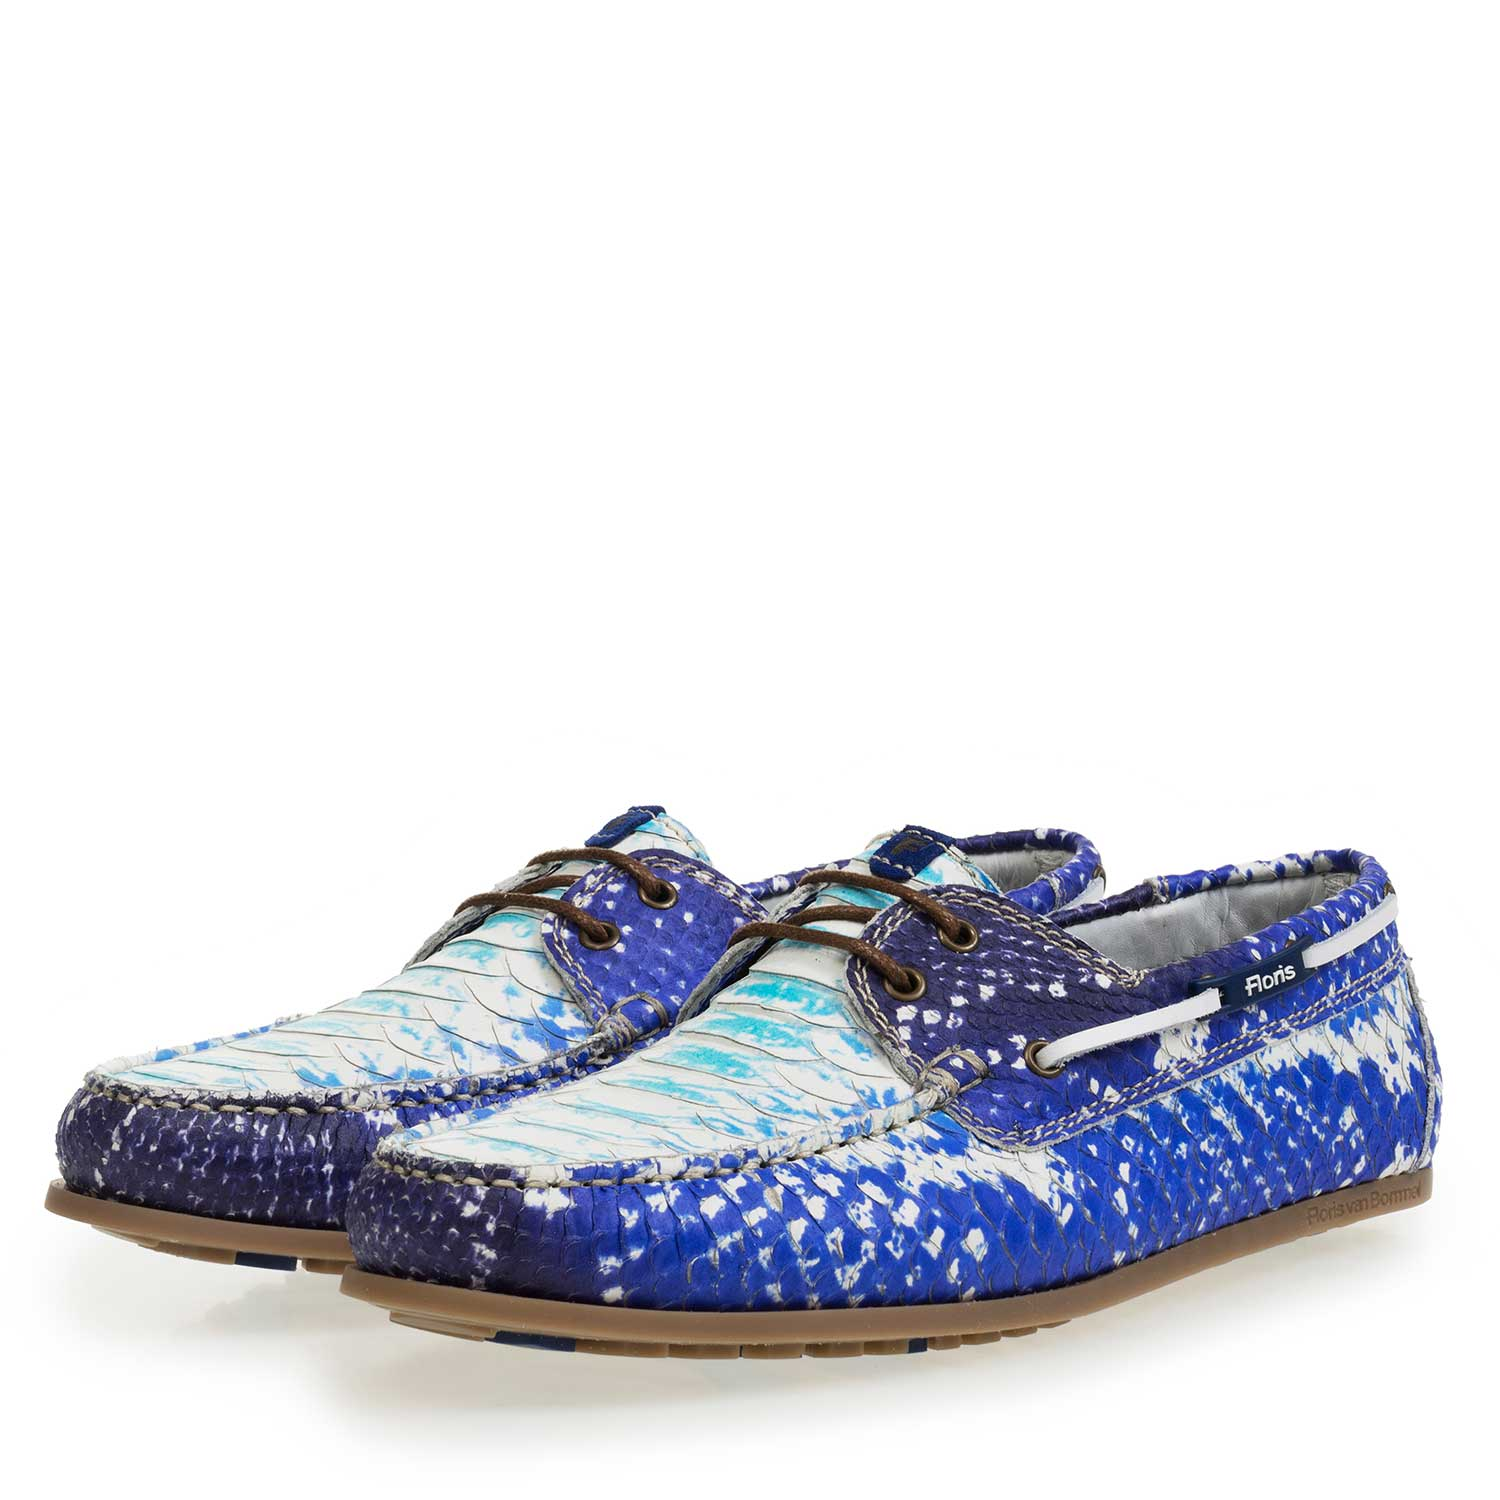 15035/03 - Blue leather boat shoe with snake print